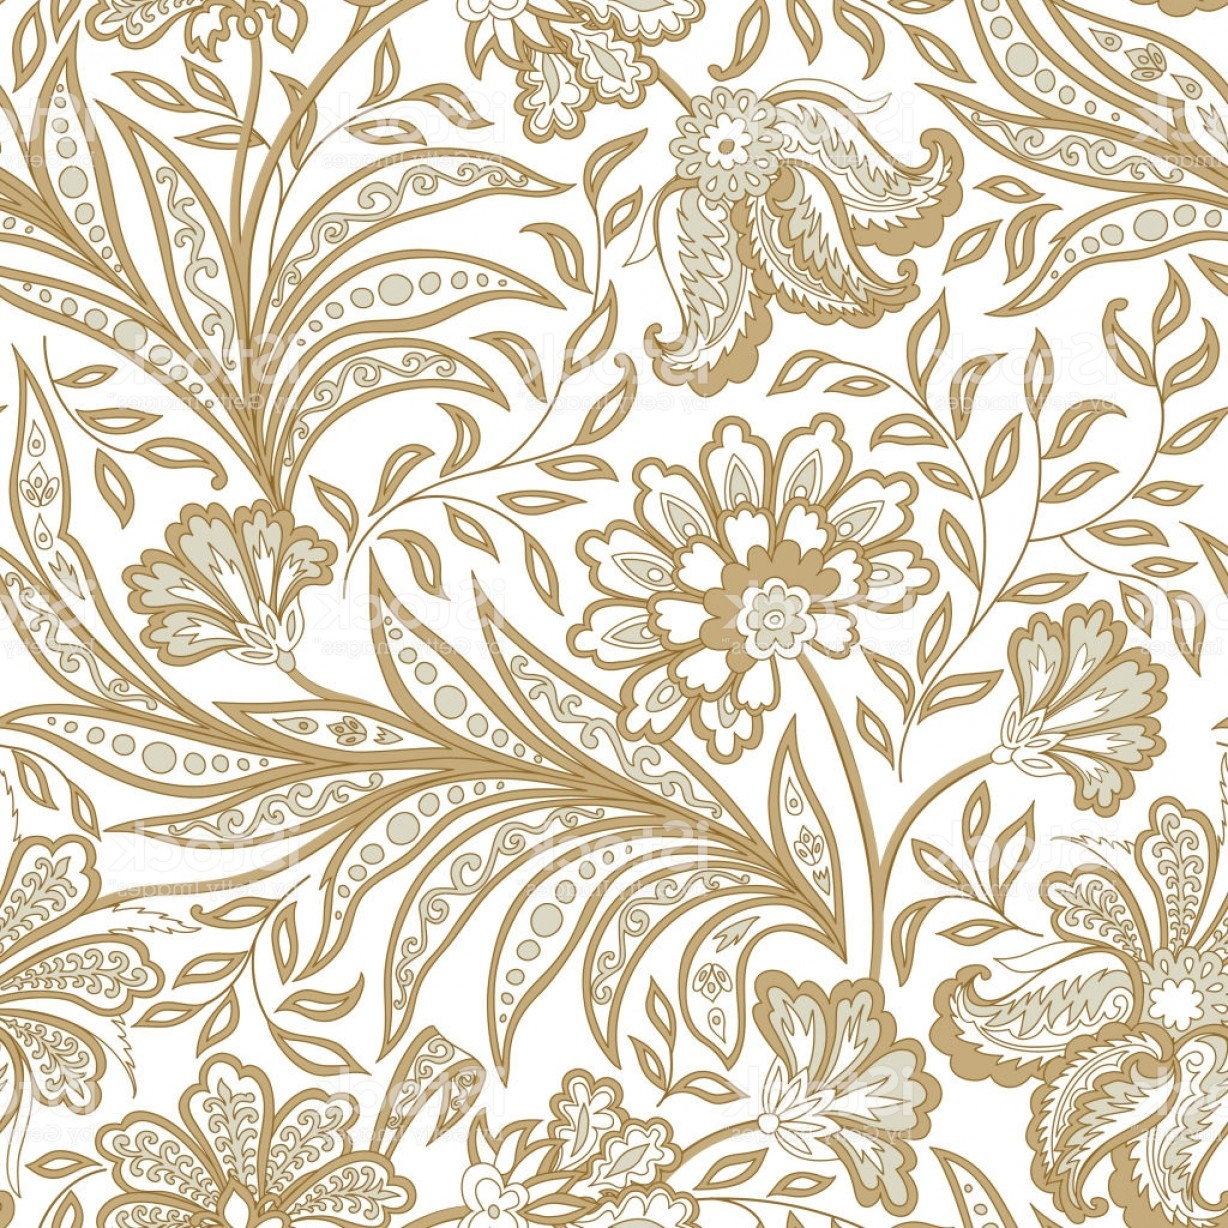 Vector Flourish Backgrounds: Floral Seamless Pattern Flourish Oriental Ethnic Background With Flowers Gm